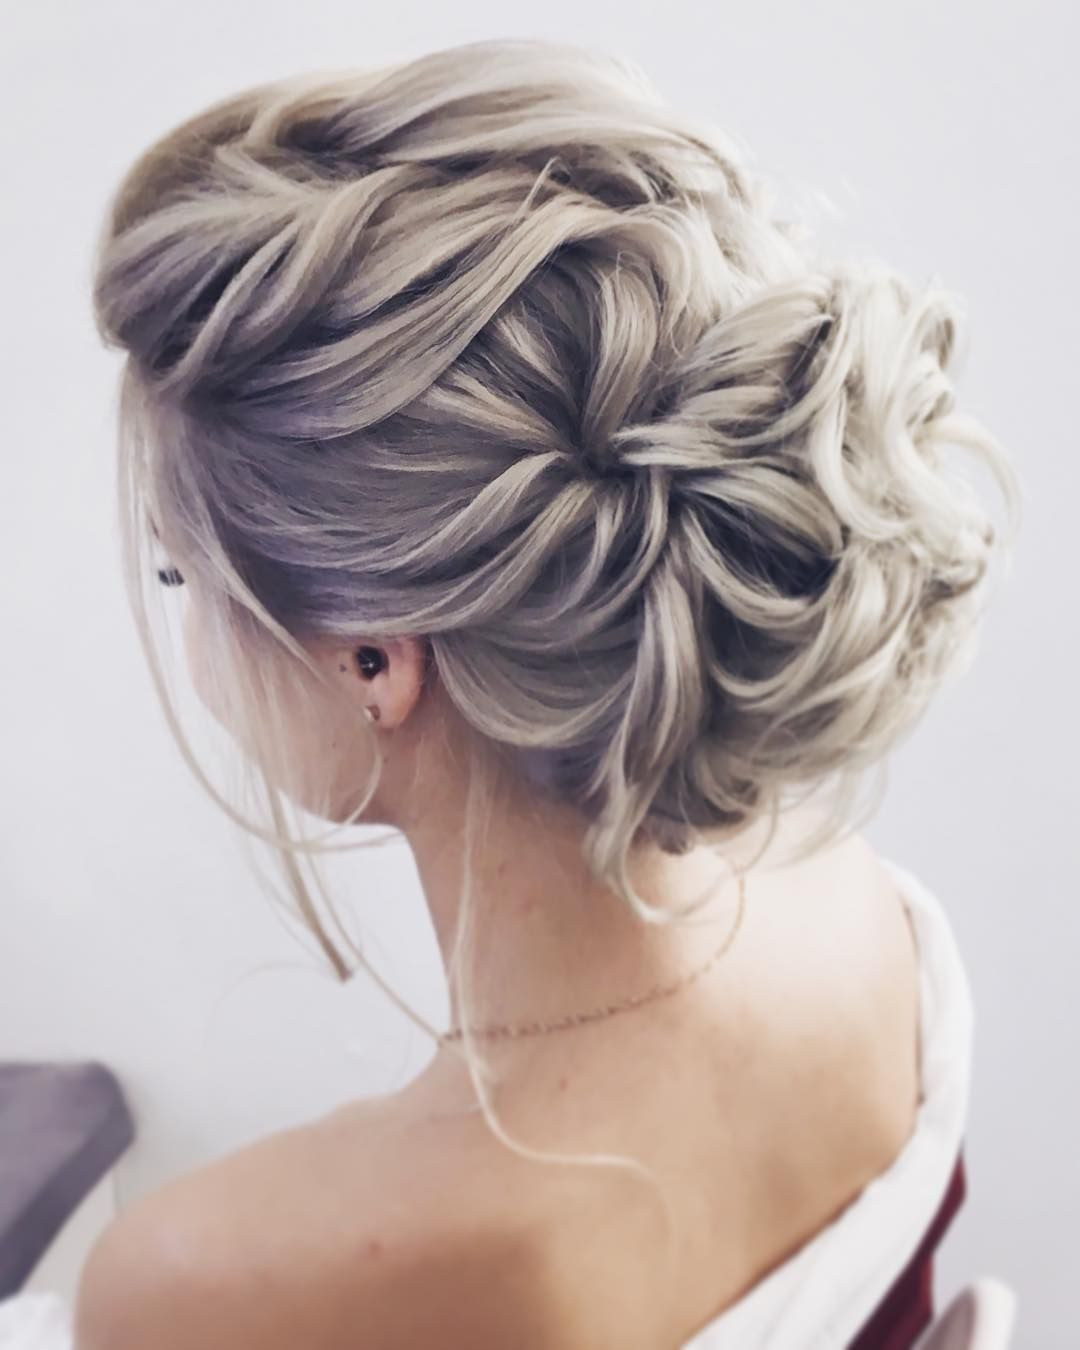 17 Gorgeous Wedding Updos For Brides In 2019: 17+ Dazzling Hairstyles 2019 Ideas